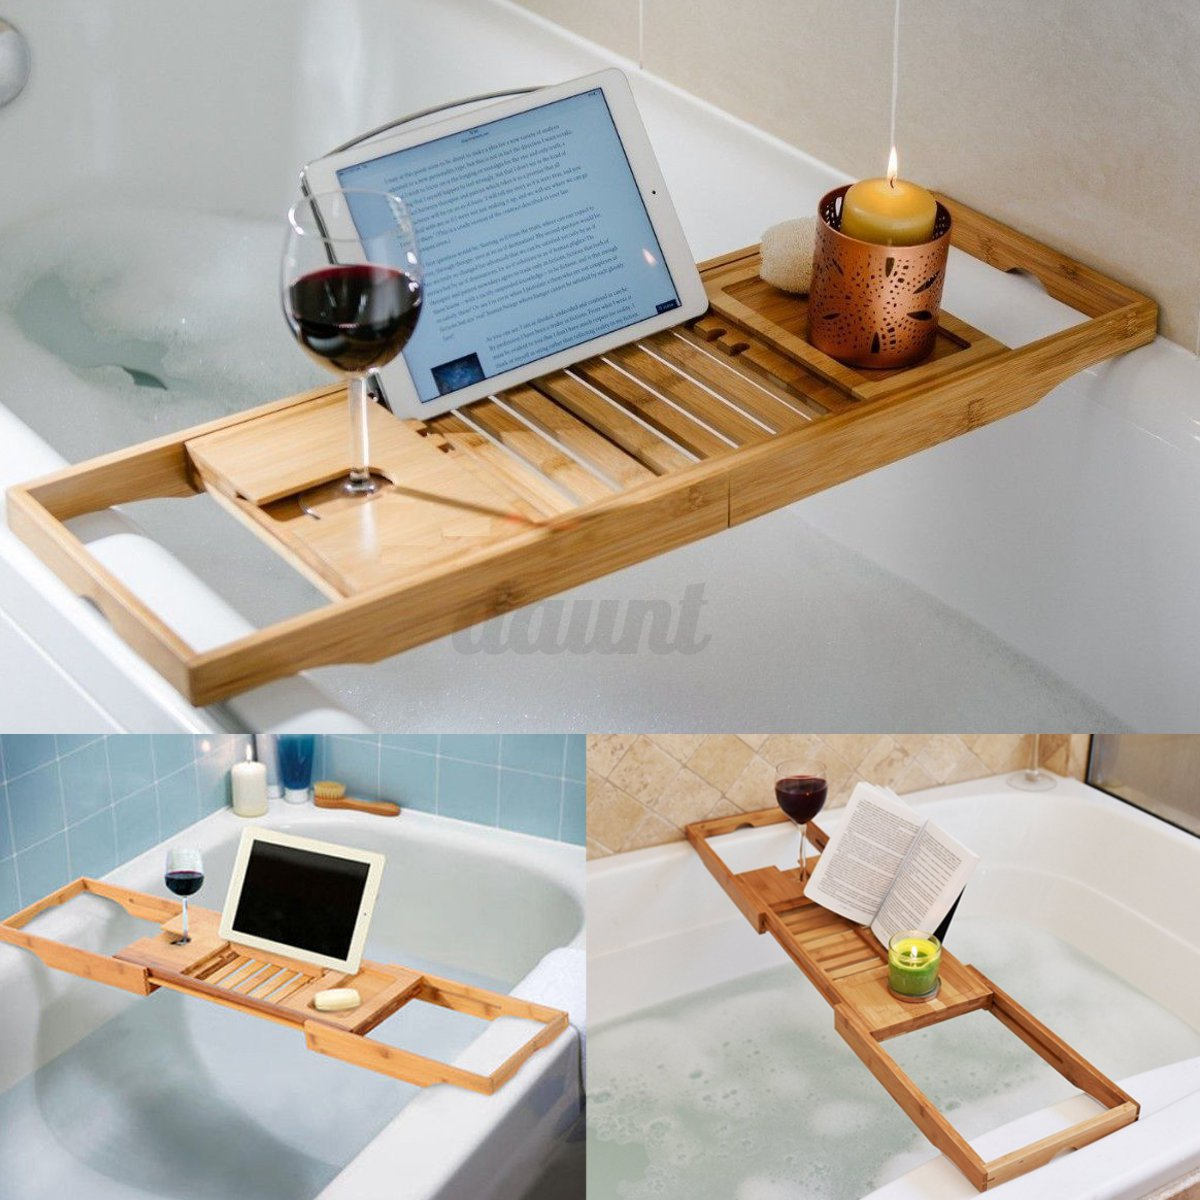 Bathtub Rack Bamboo Shelf Shower Tub Book Reading Tray